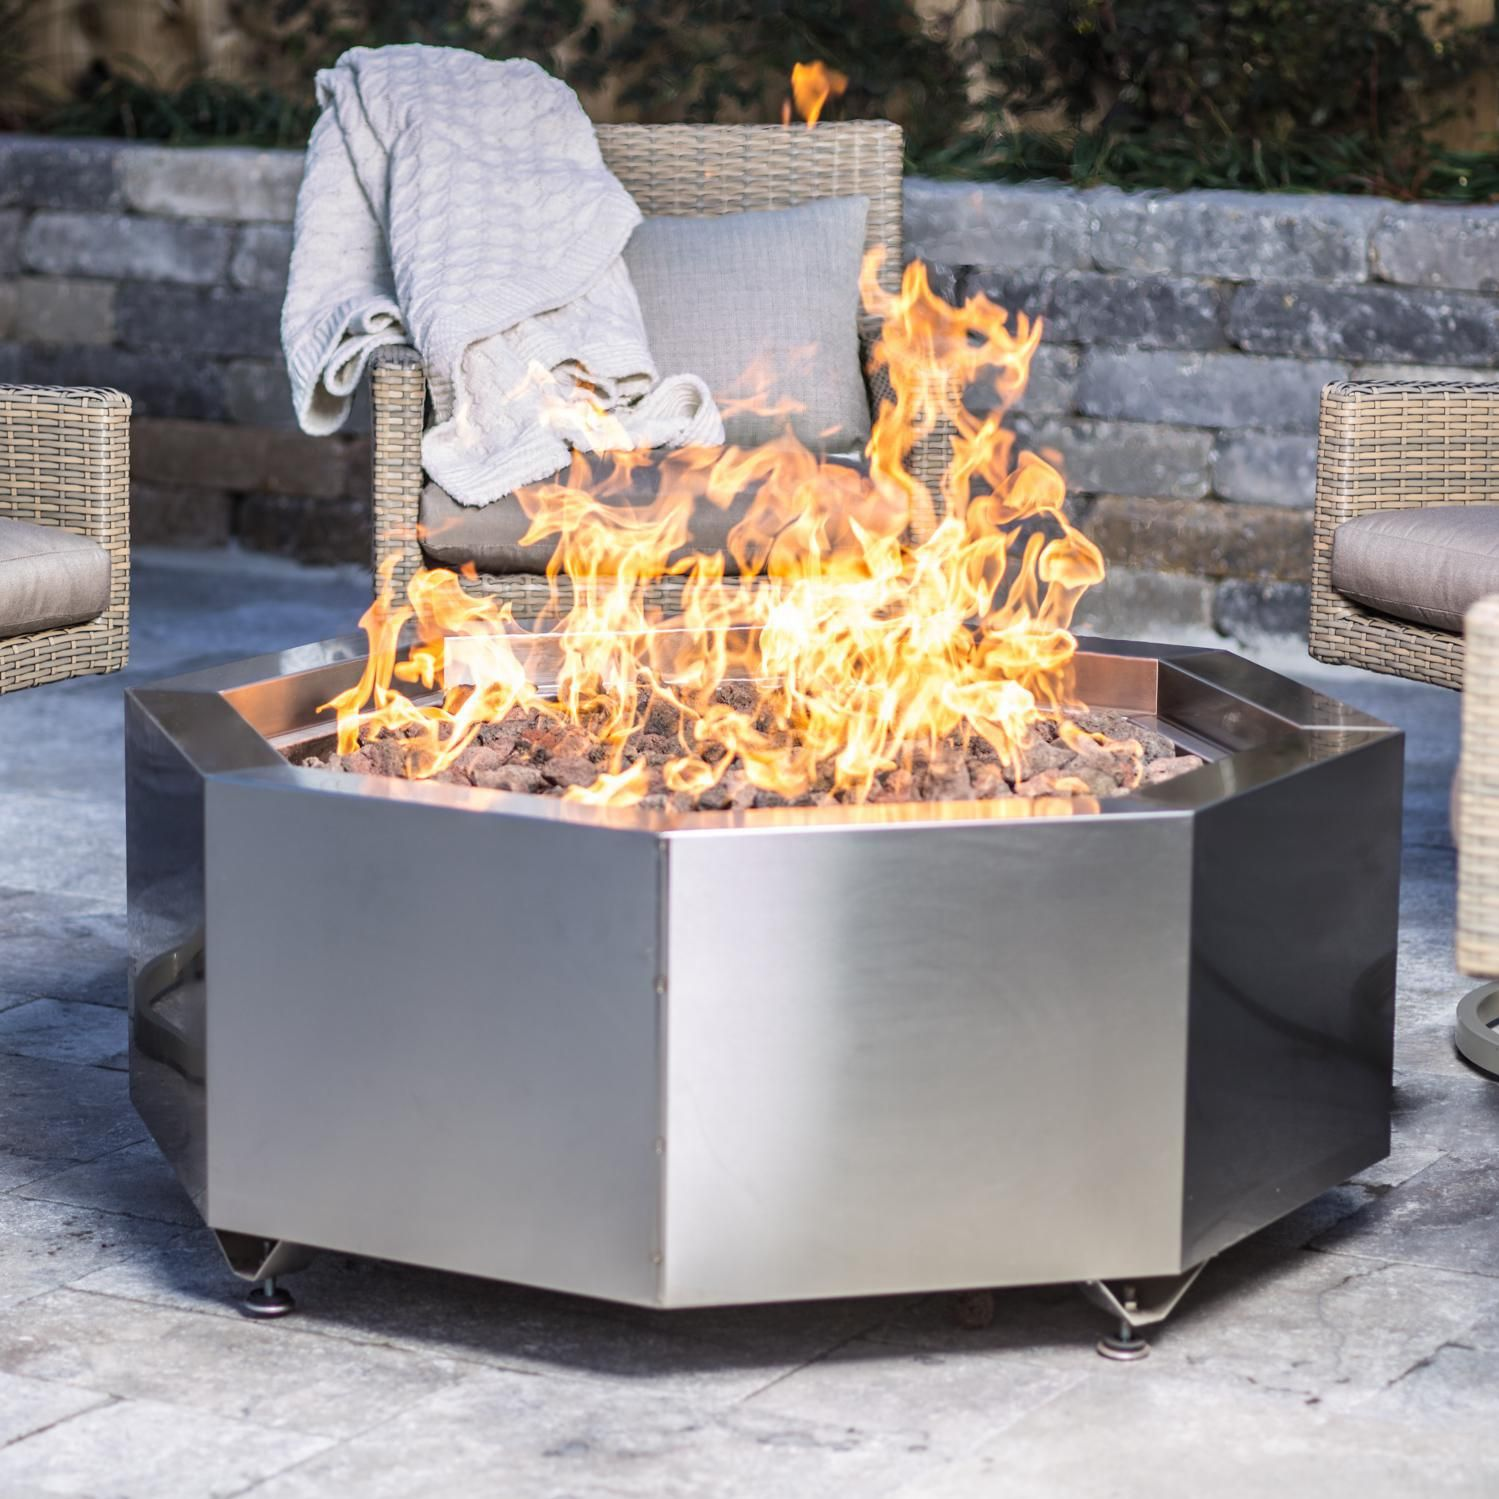 This Lakeview Outdoor Designs 42 Inch Stainless Steel Octagon Fire Pit Comes Complete With 24 Double Ring And Lava Rocks